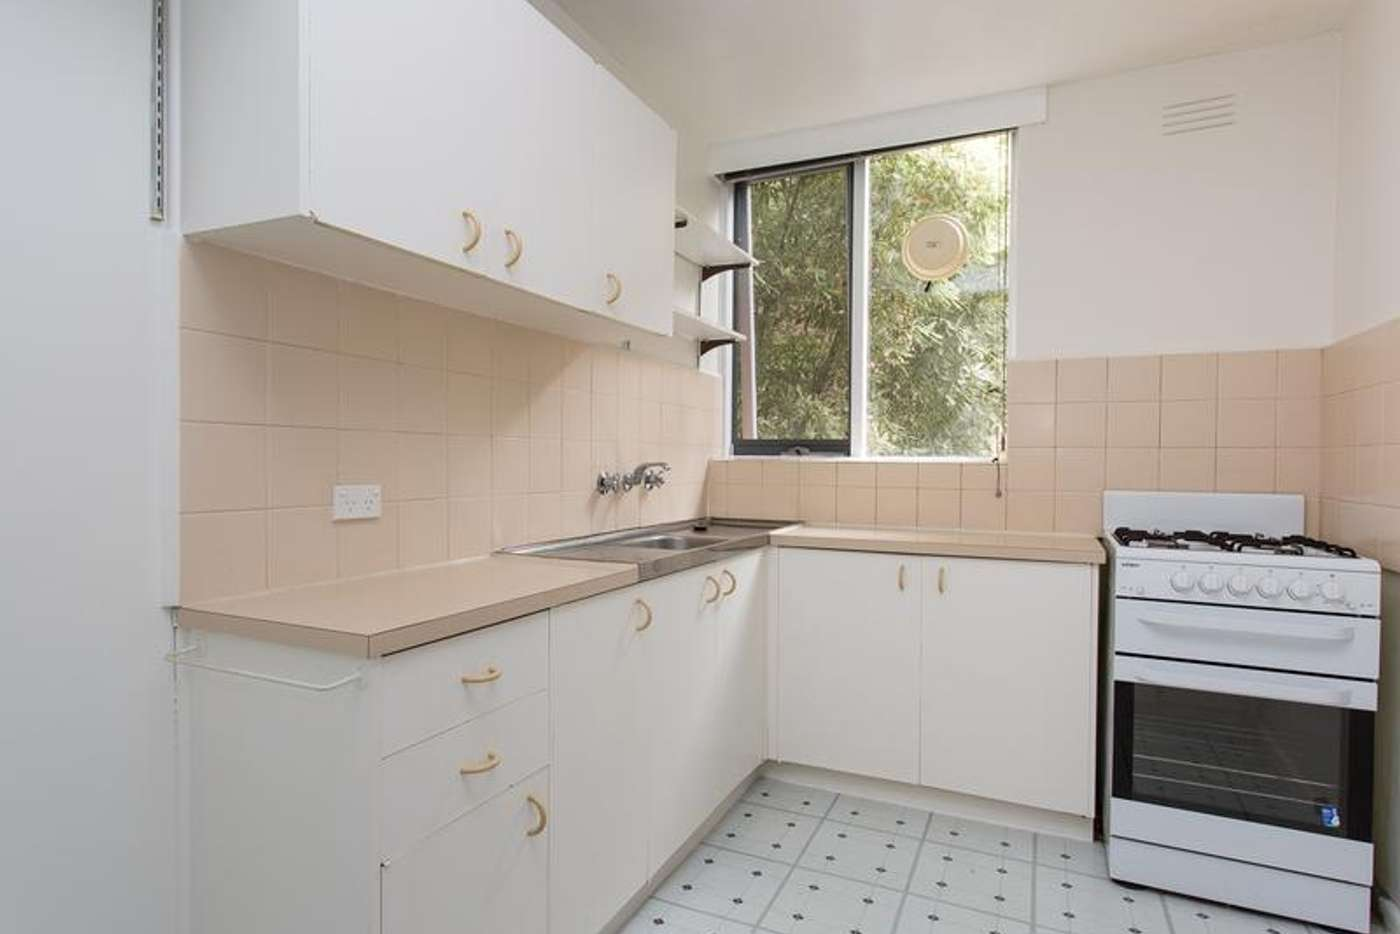 Main view of Homely apartment listing, 4/14 Dickens Street, Richmond VIC 3121